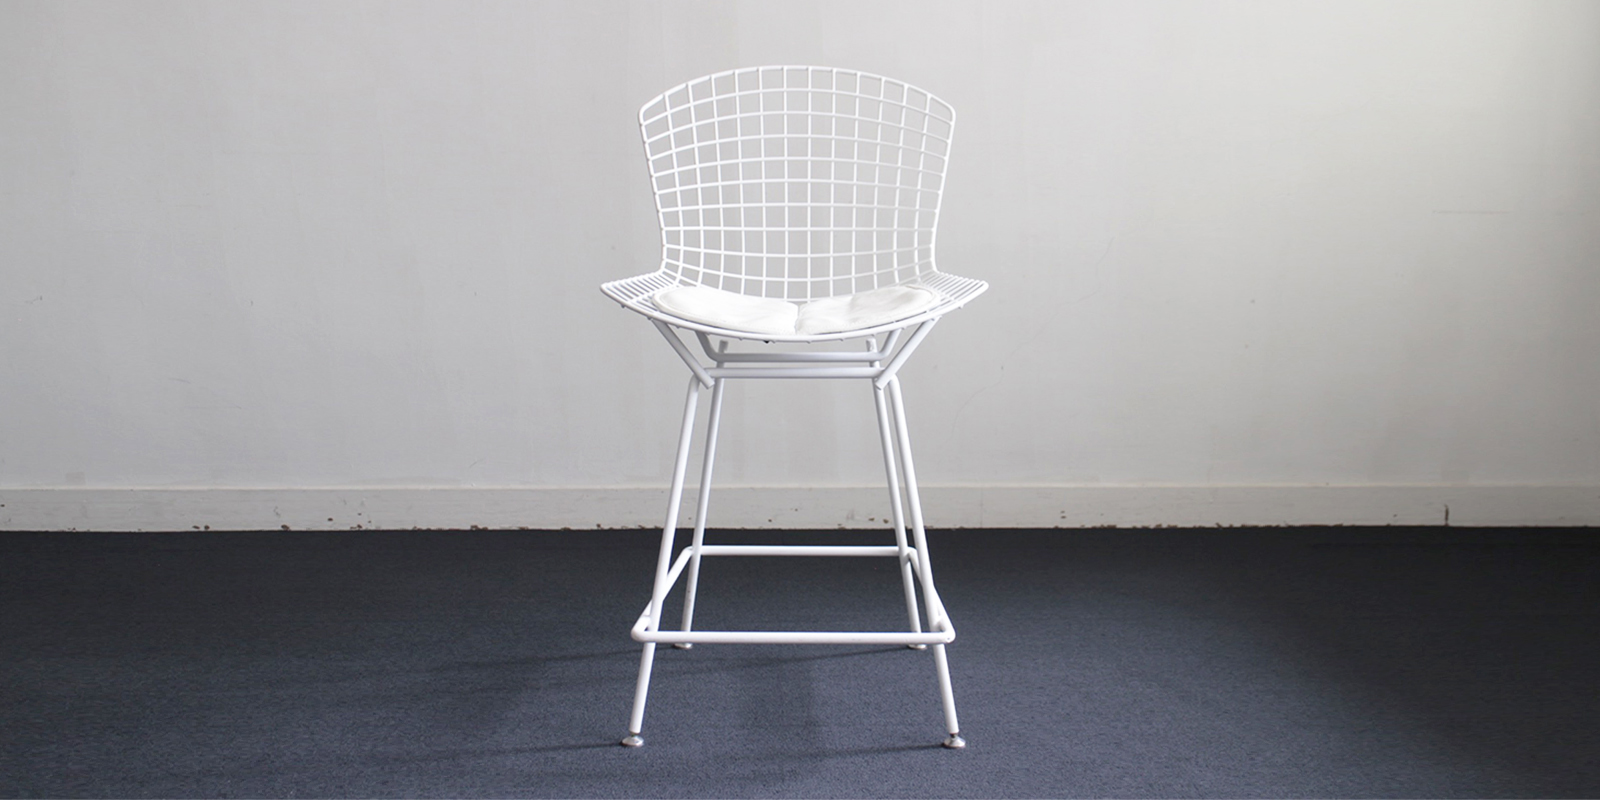 【sold out】Knoll ワイヤーチェア(ハイタイプ)・ホワイト(USED)